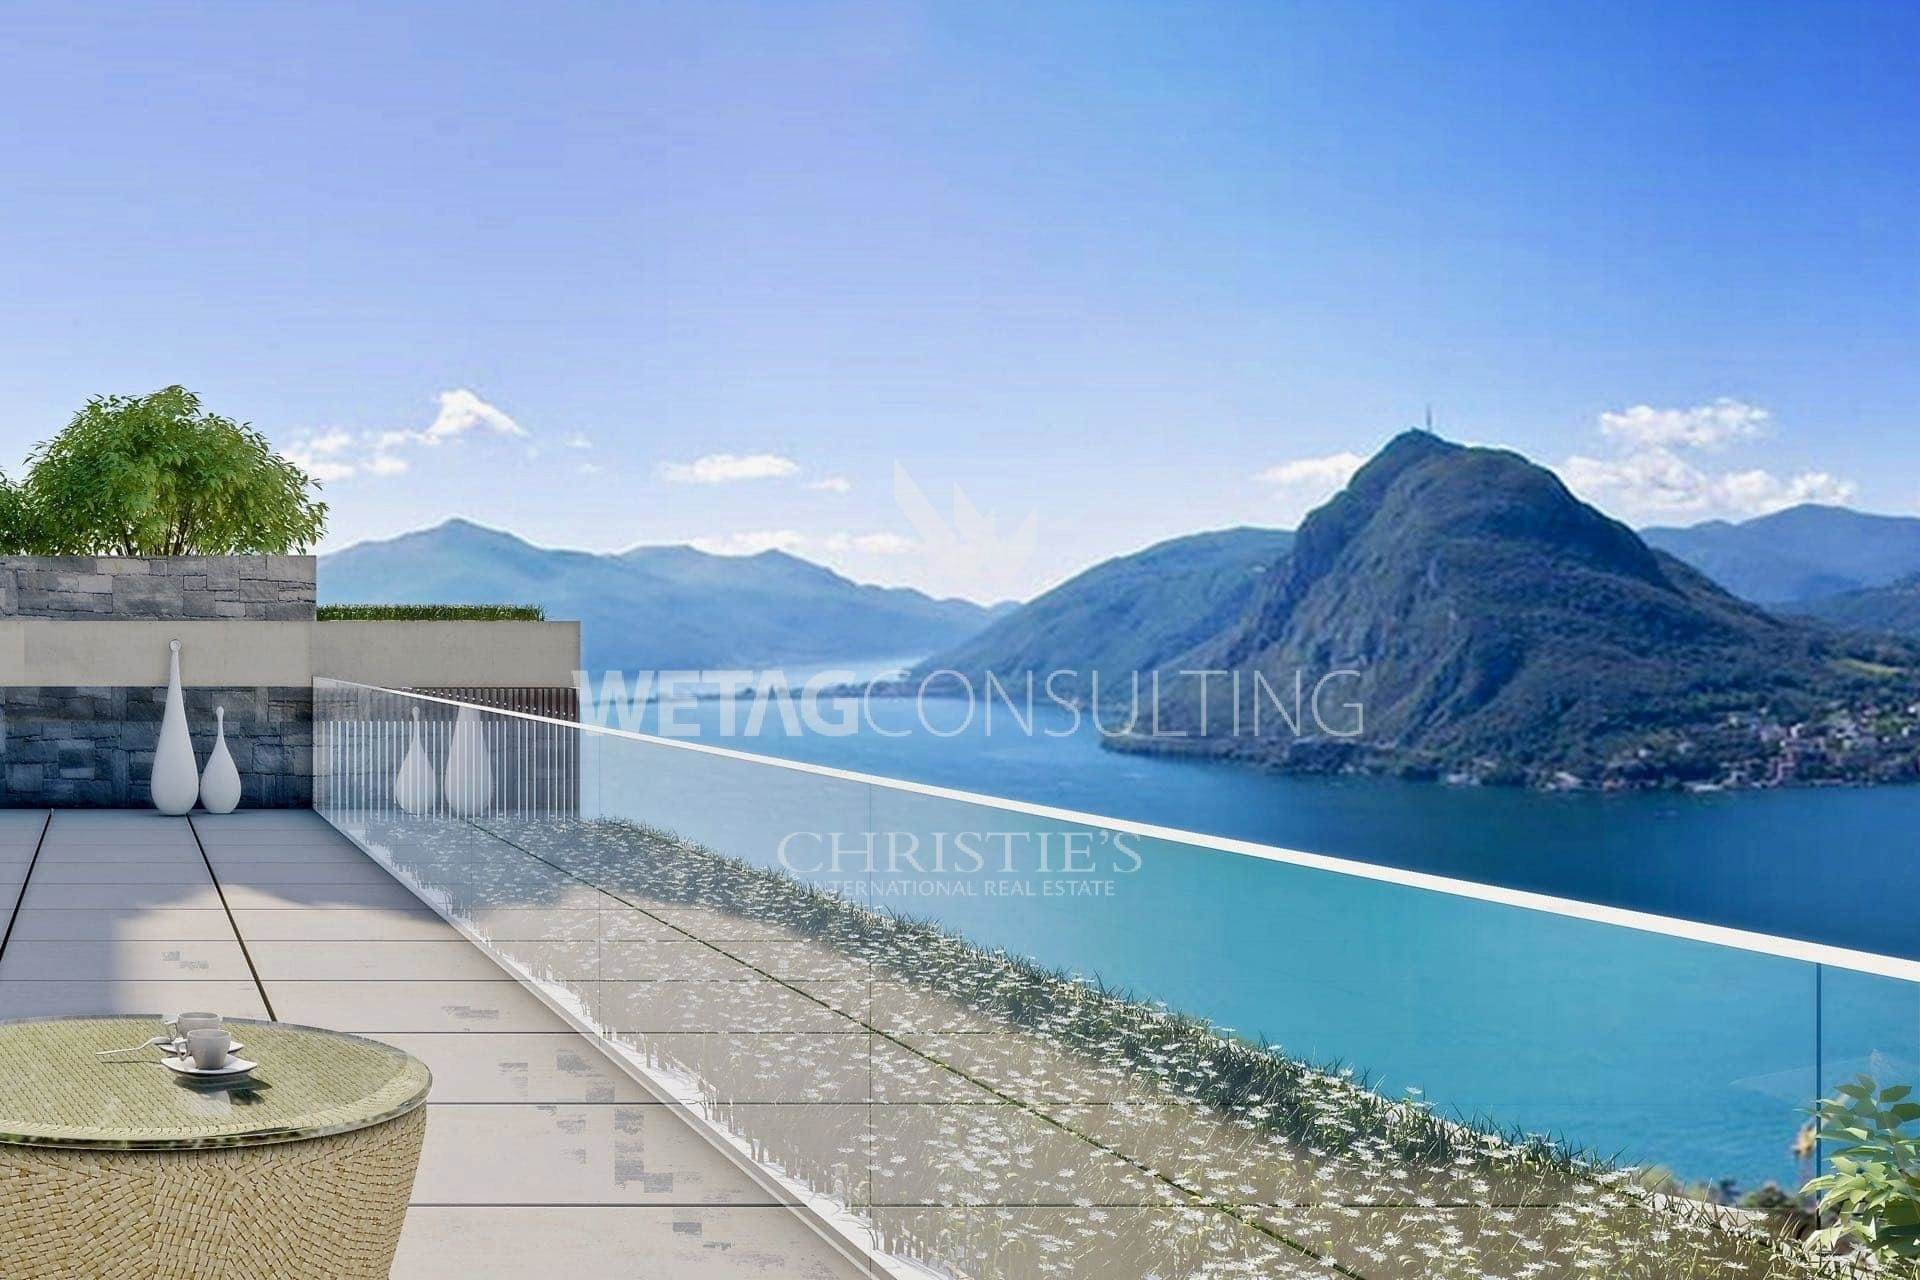 Апартаменты / Квартиры для того Продажа на Apartments for sale in Aldesago with spectacular Lake Lugano views Aldesago, Тичино,6974 Швейцария